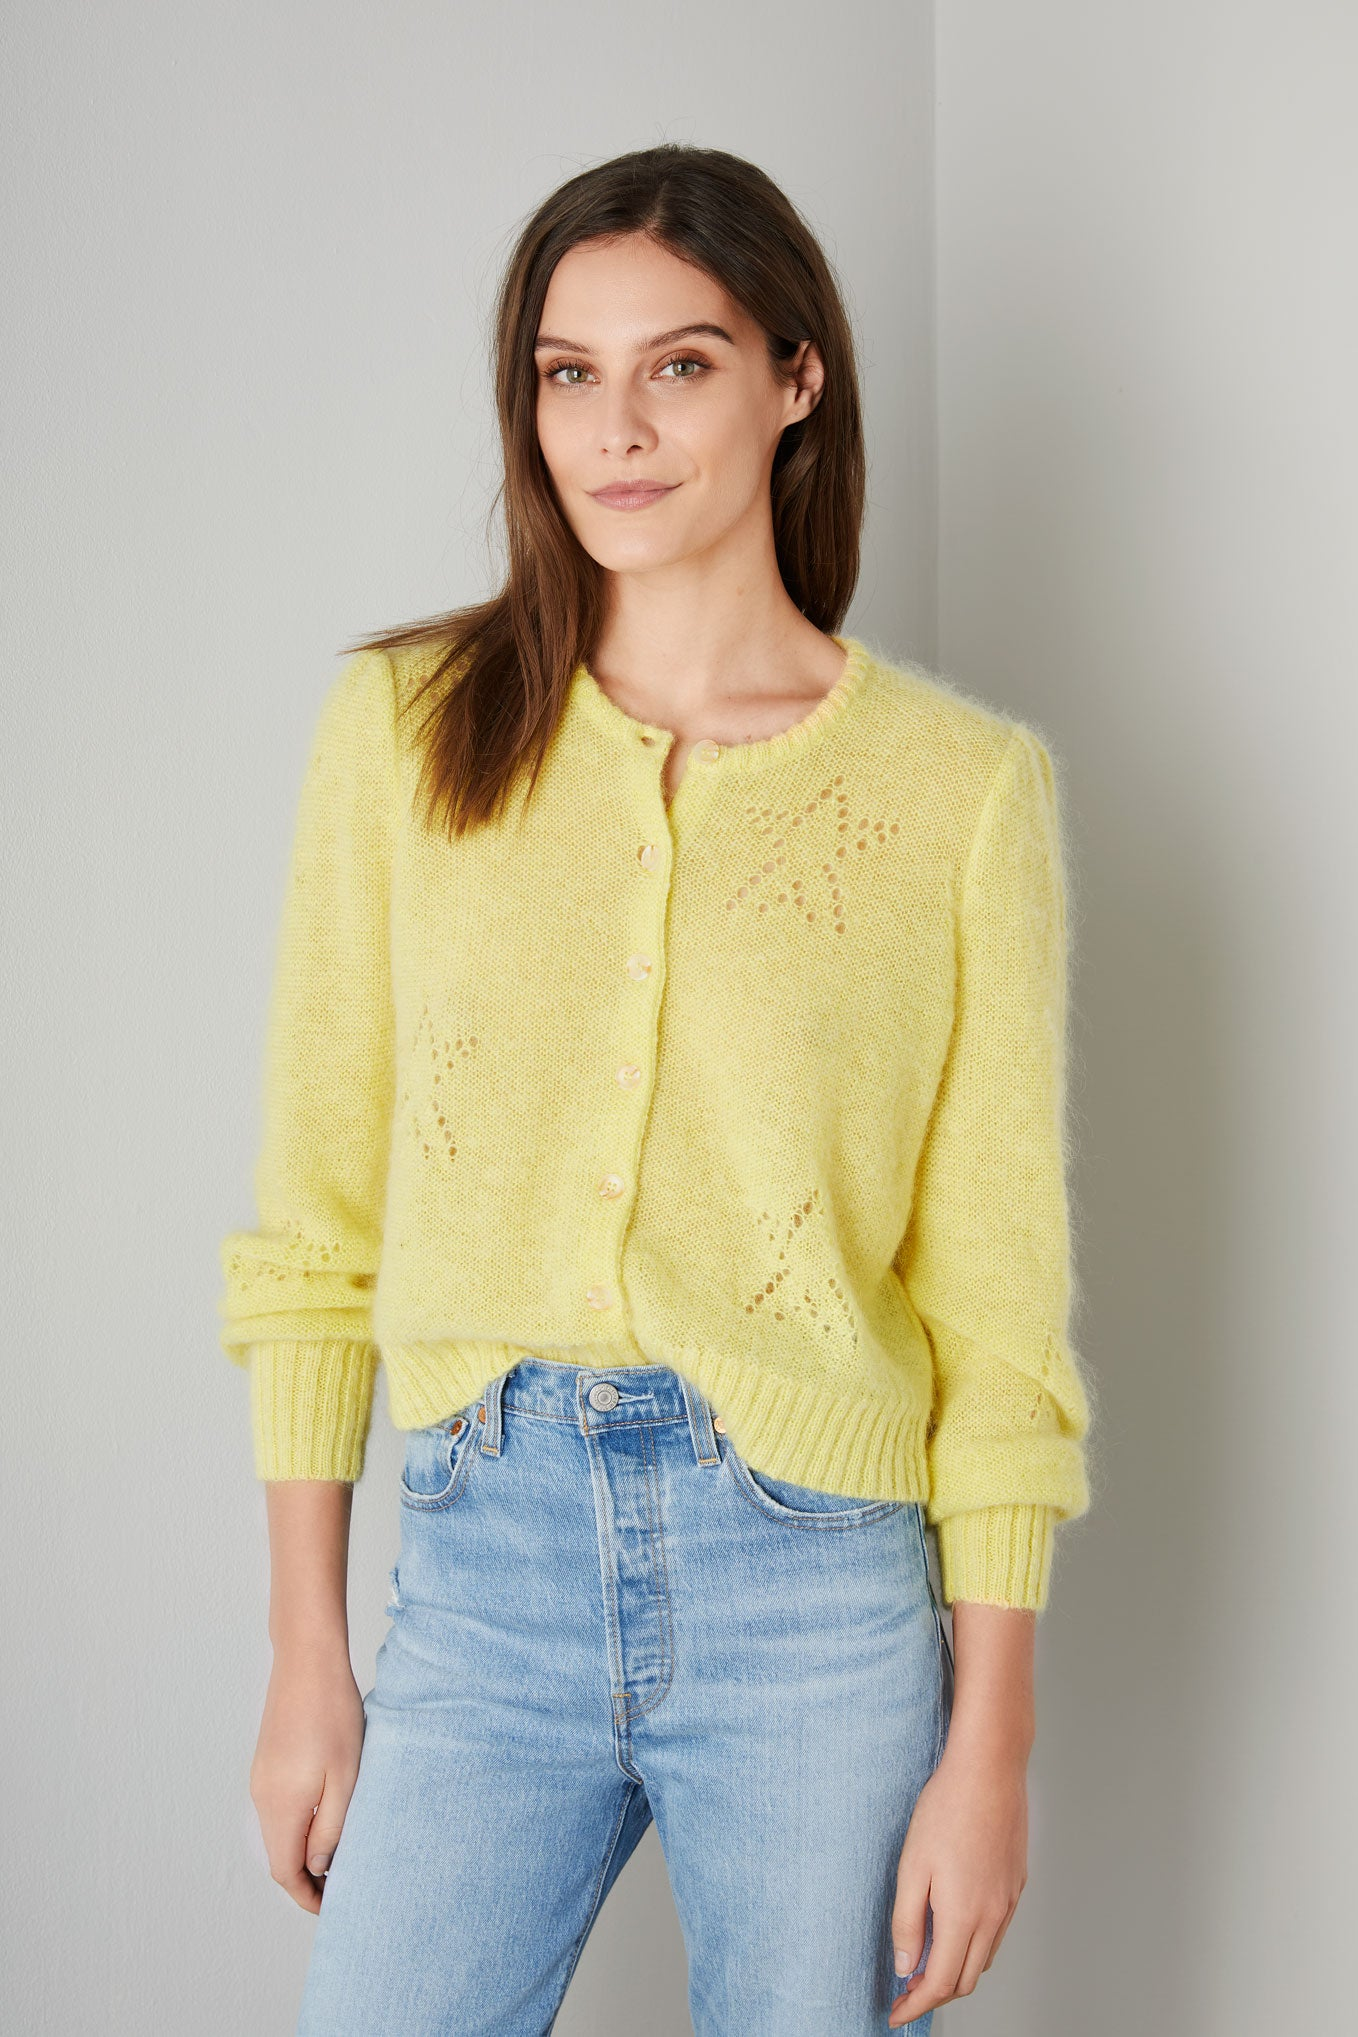 CELESTE POINTELLE STAR MOHAIR CARDIGAN - Yellow